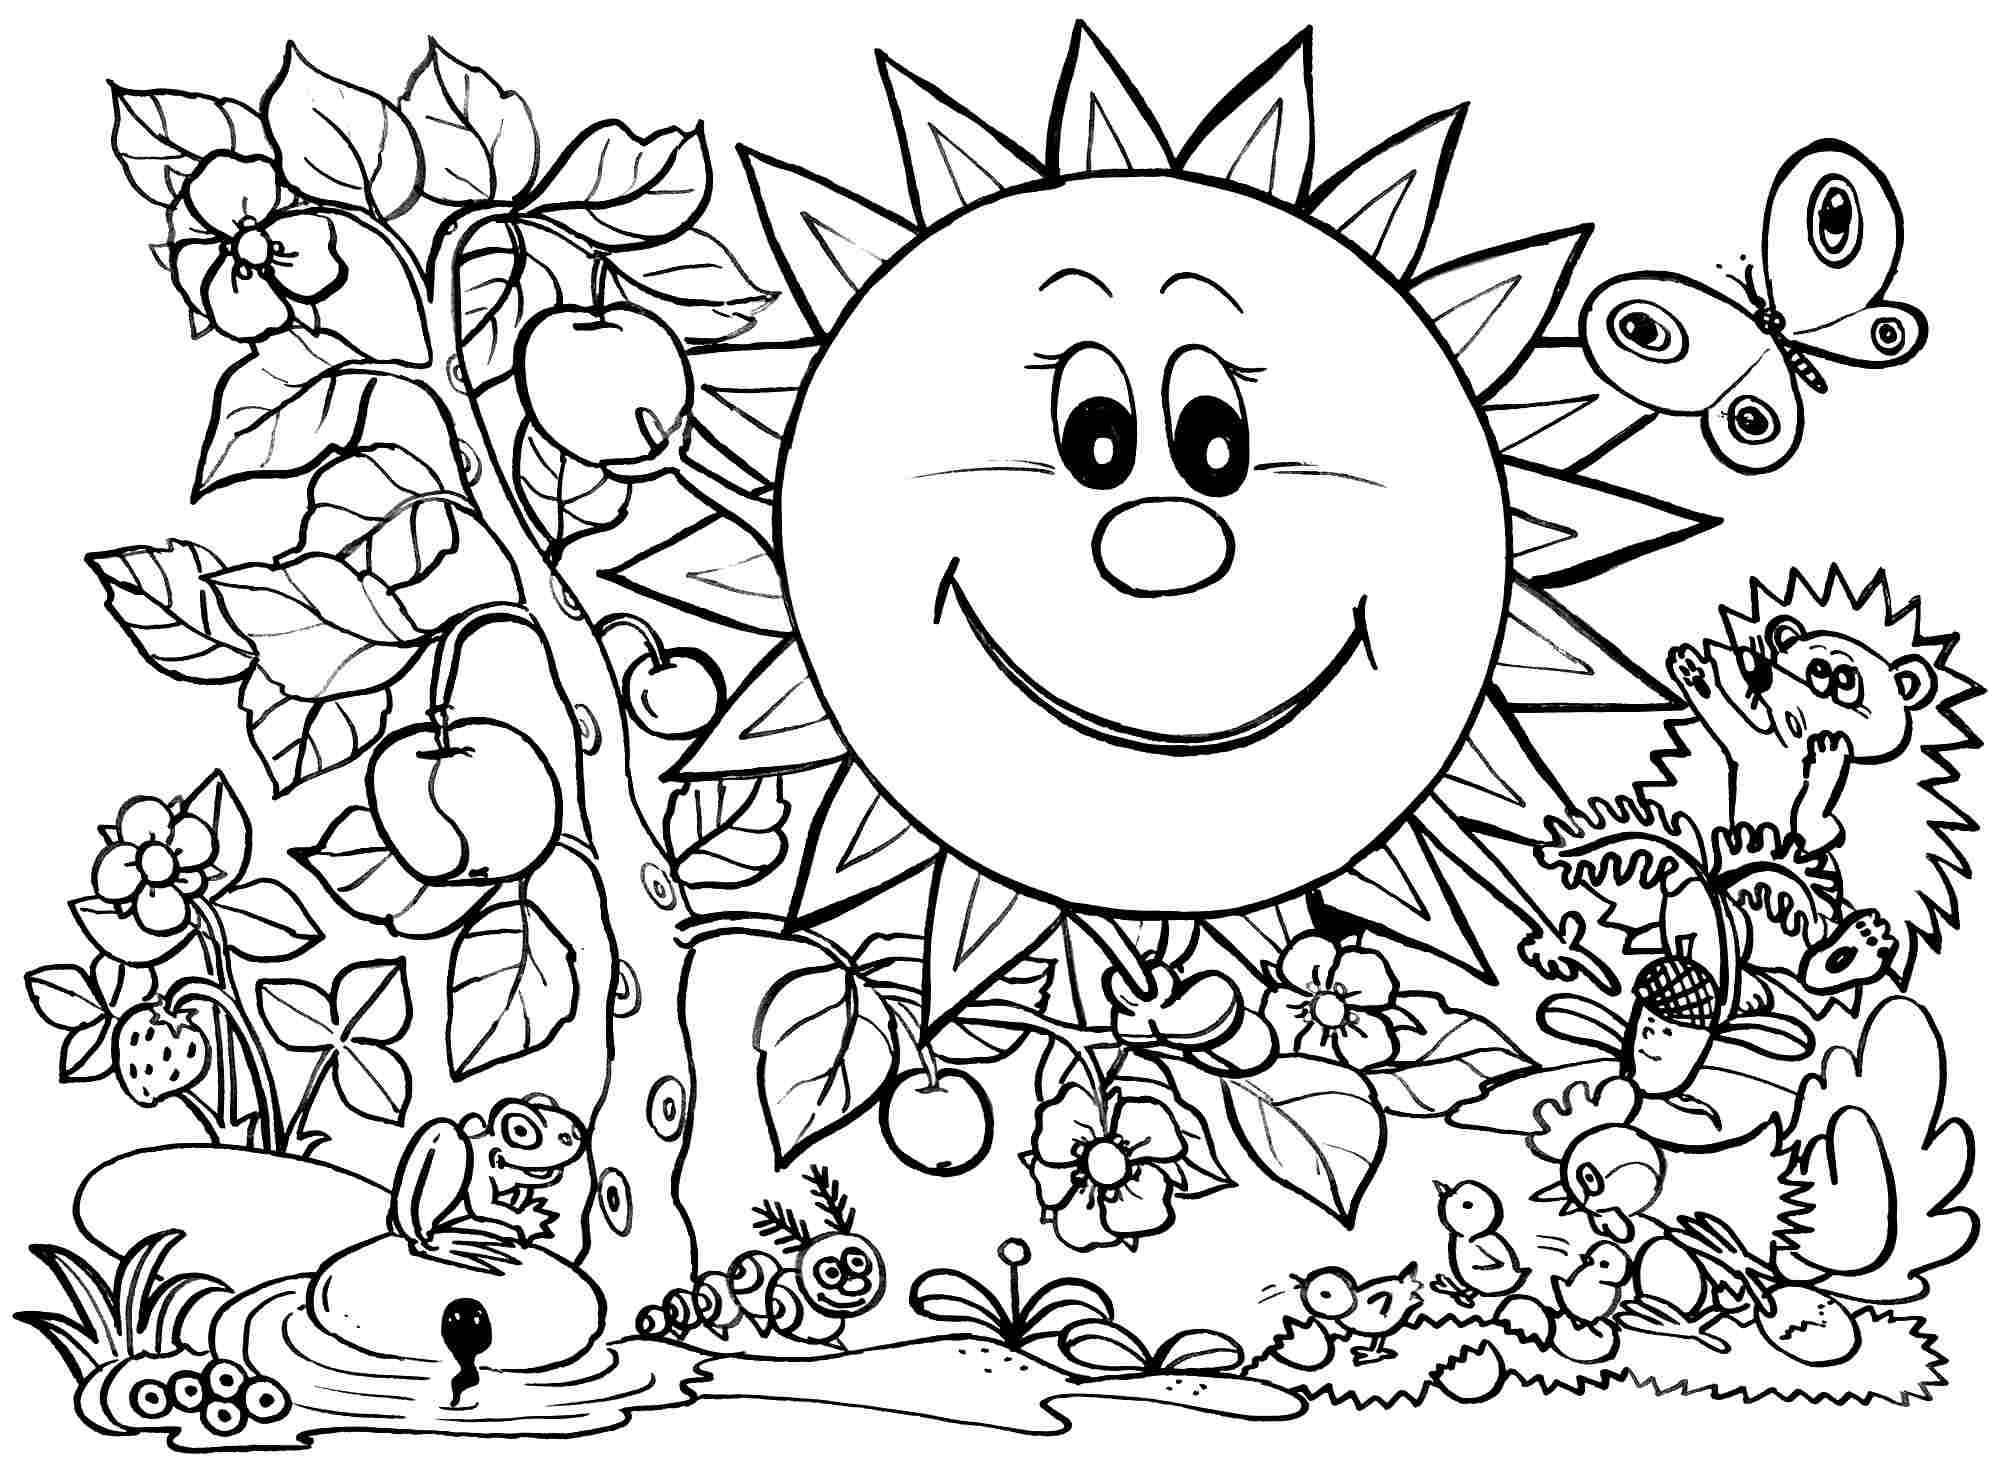 Kindergarten spring coloring sheets - Spring Coloring Pages